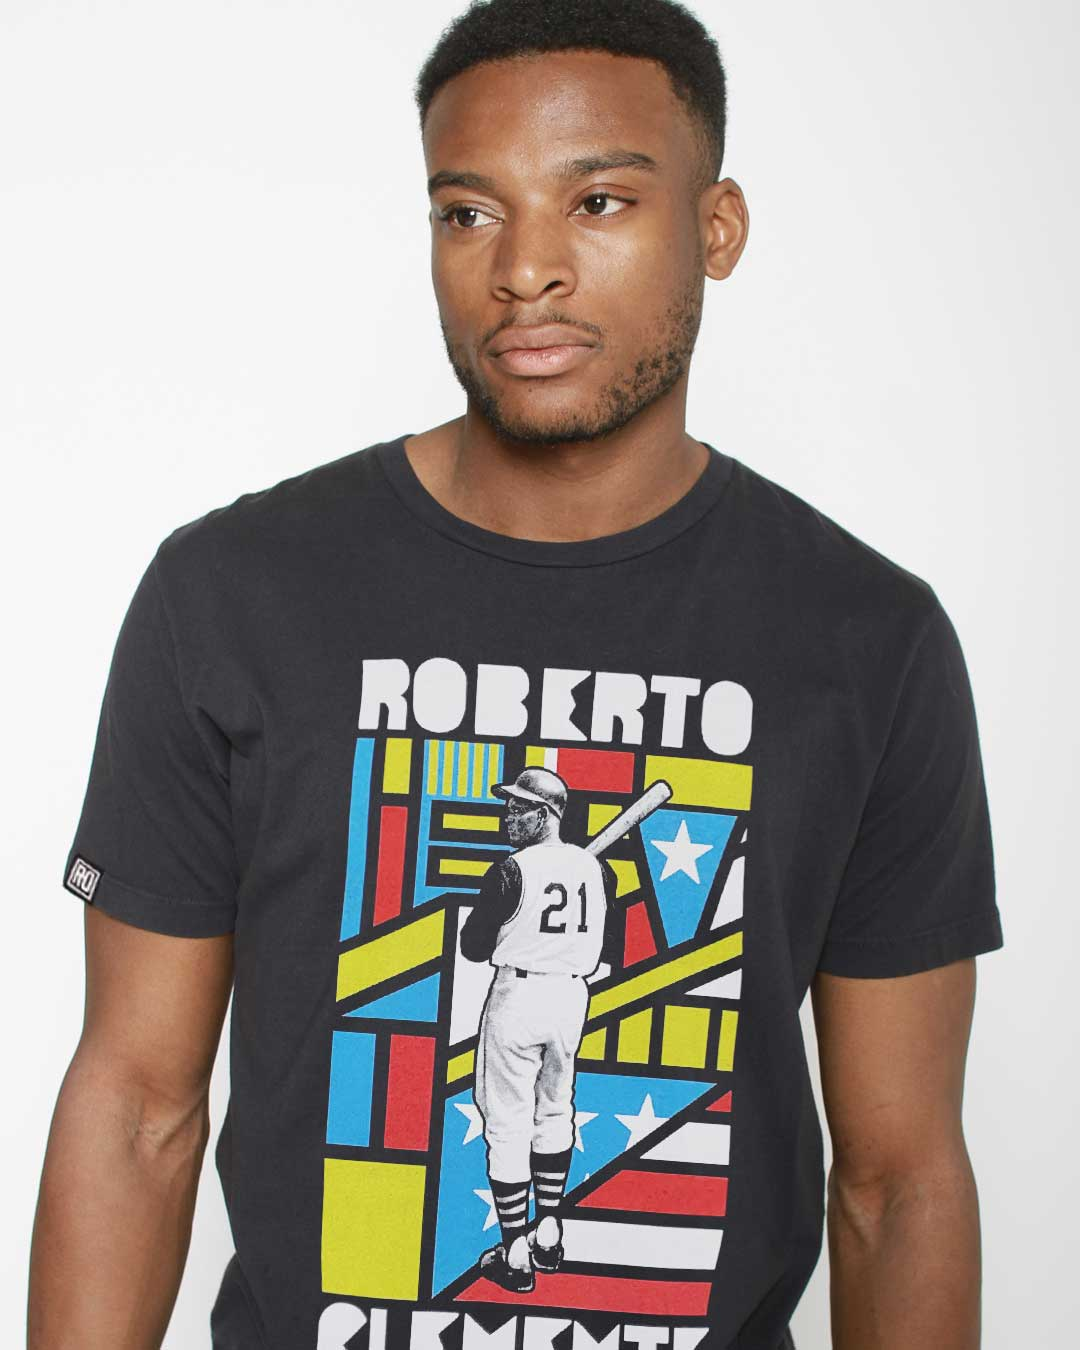 NHM - Roberto Clemente Heritage Tee - Roots of Inc dba Roots of Fight